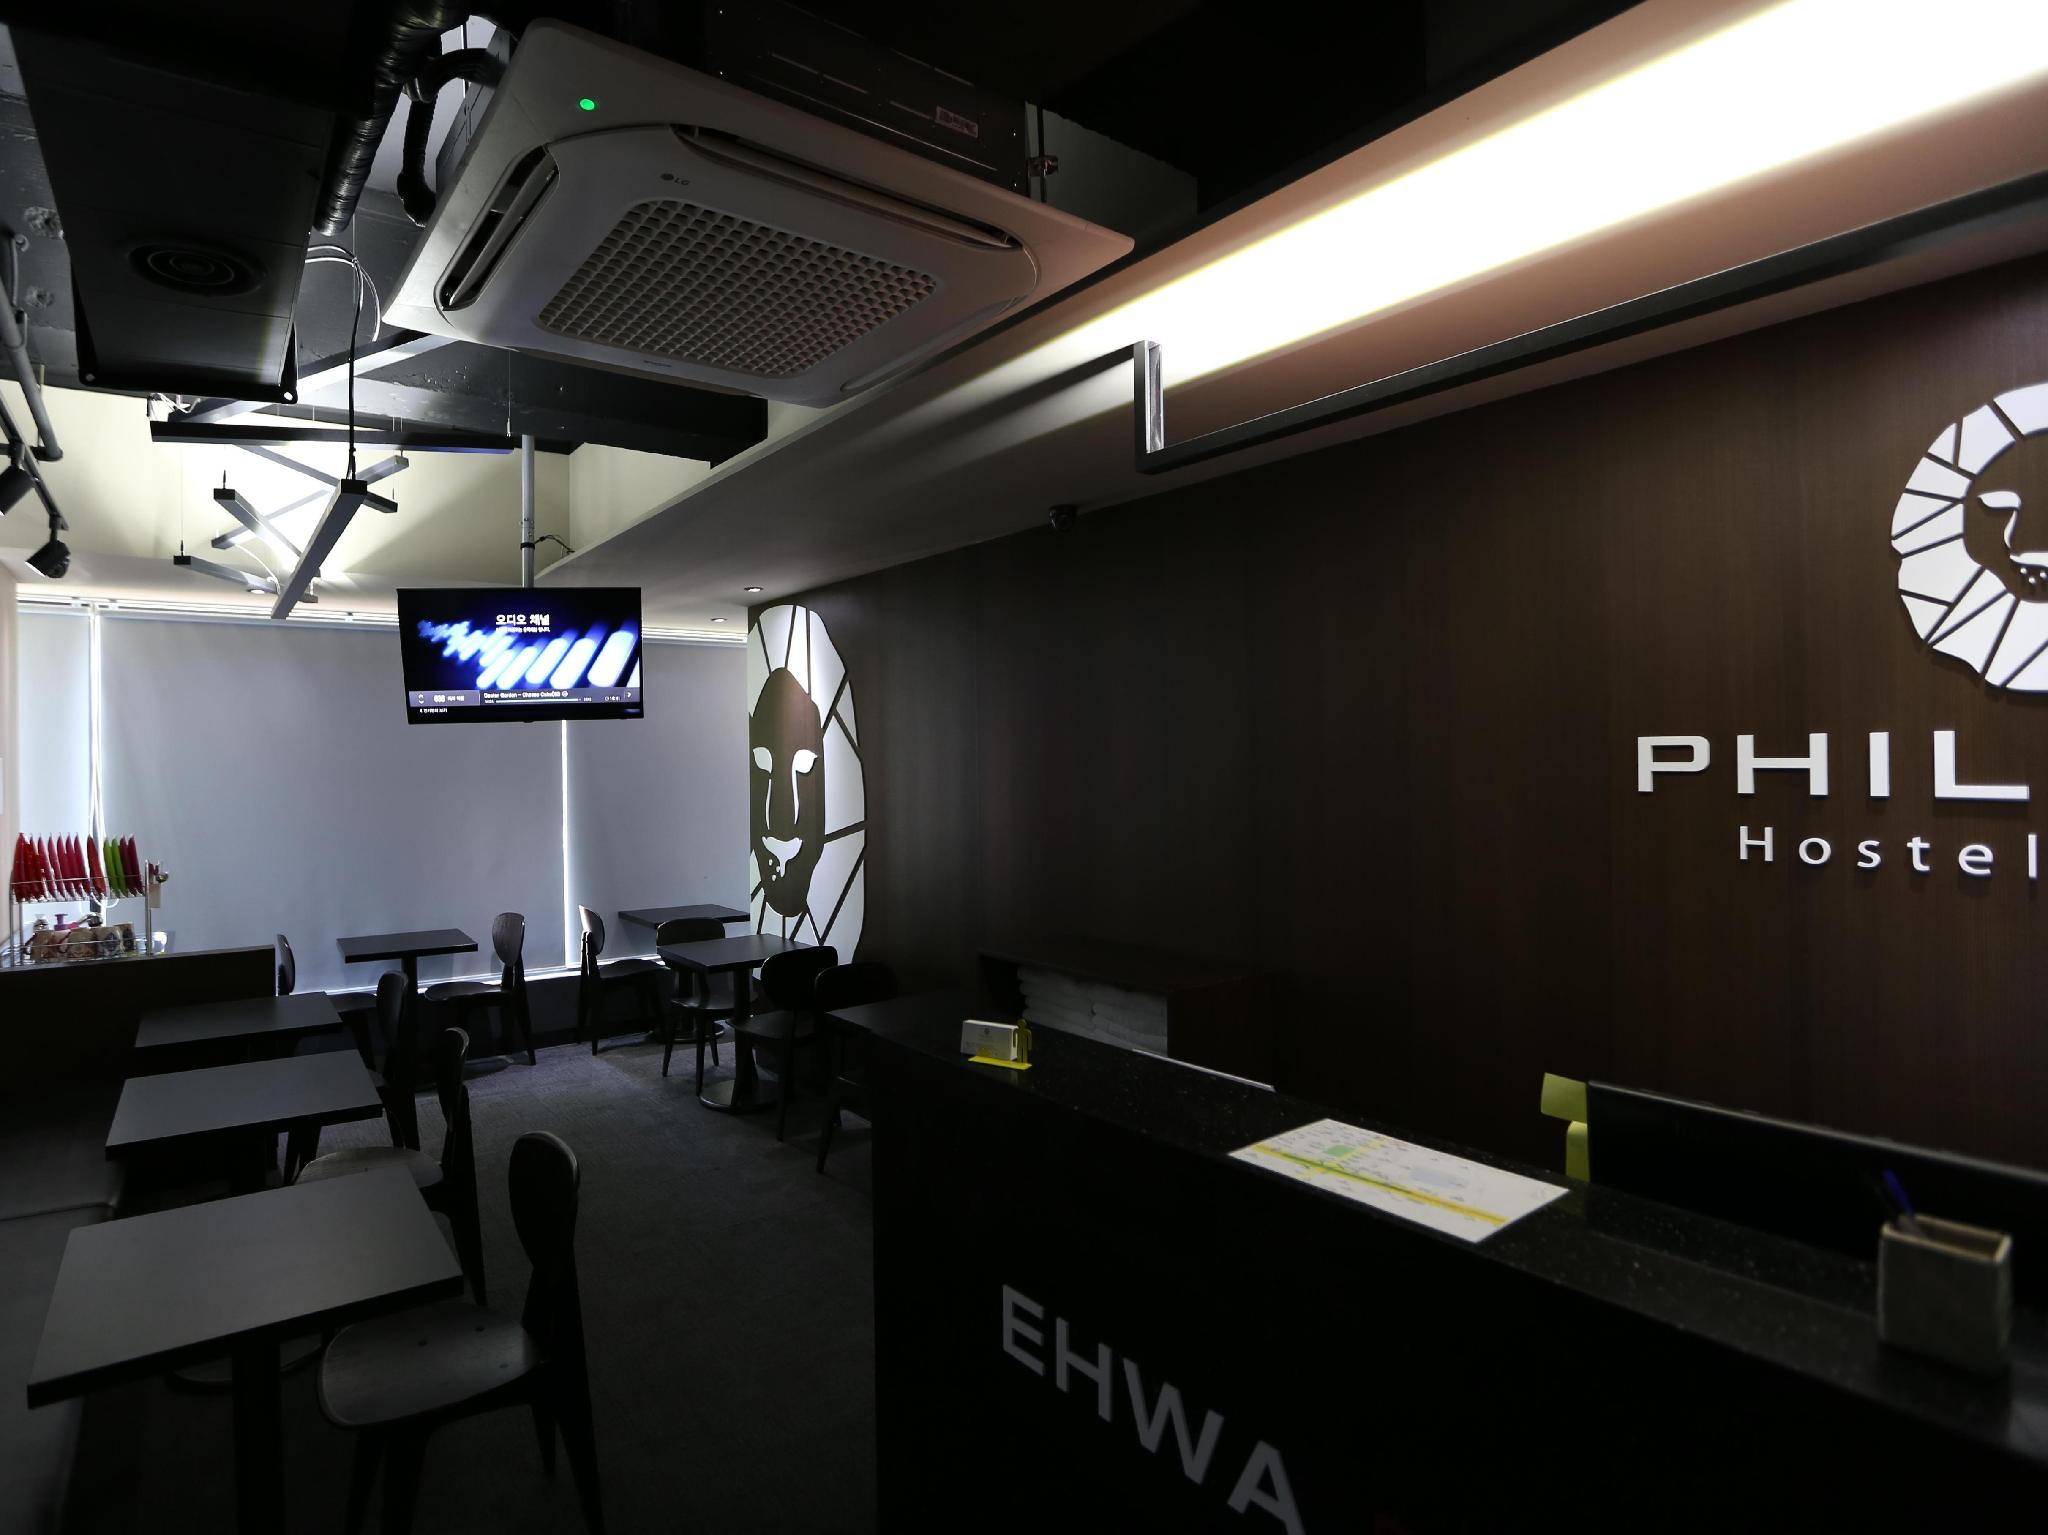 Philstay Ehwa Boutiqueの画像